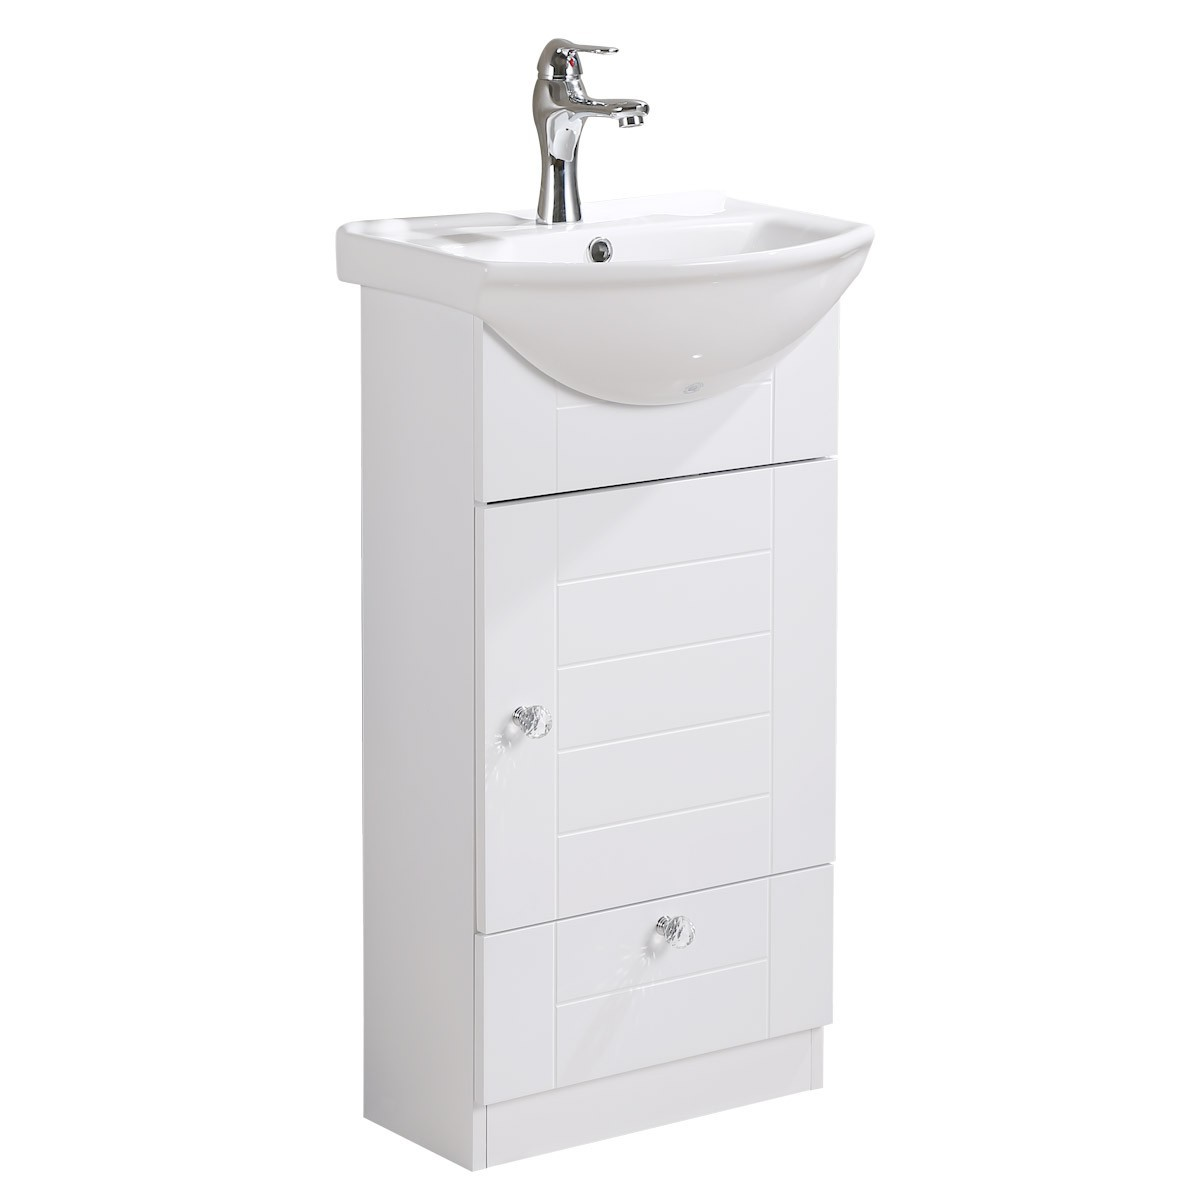 Small wall mounted cabinet vanity bathroom sink with faucet easy assemble for Compact sinks for small bathrooms